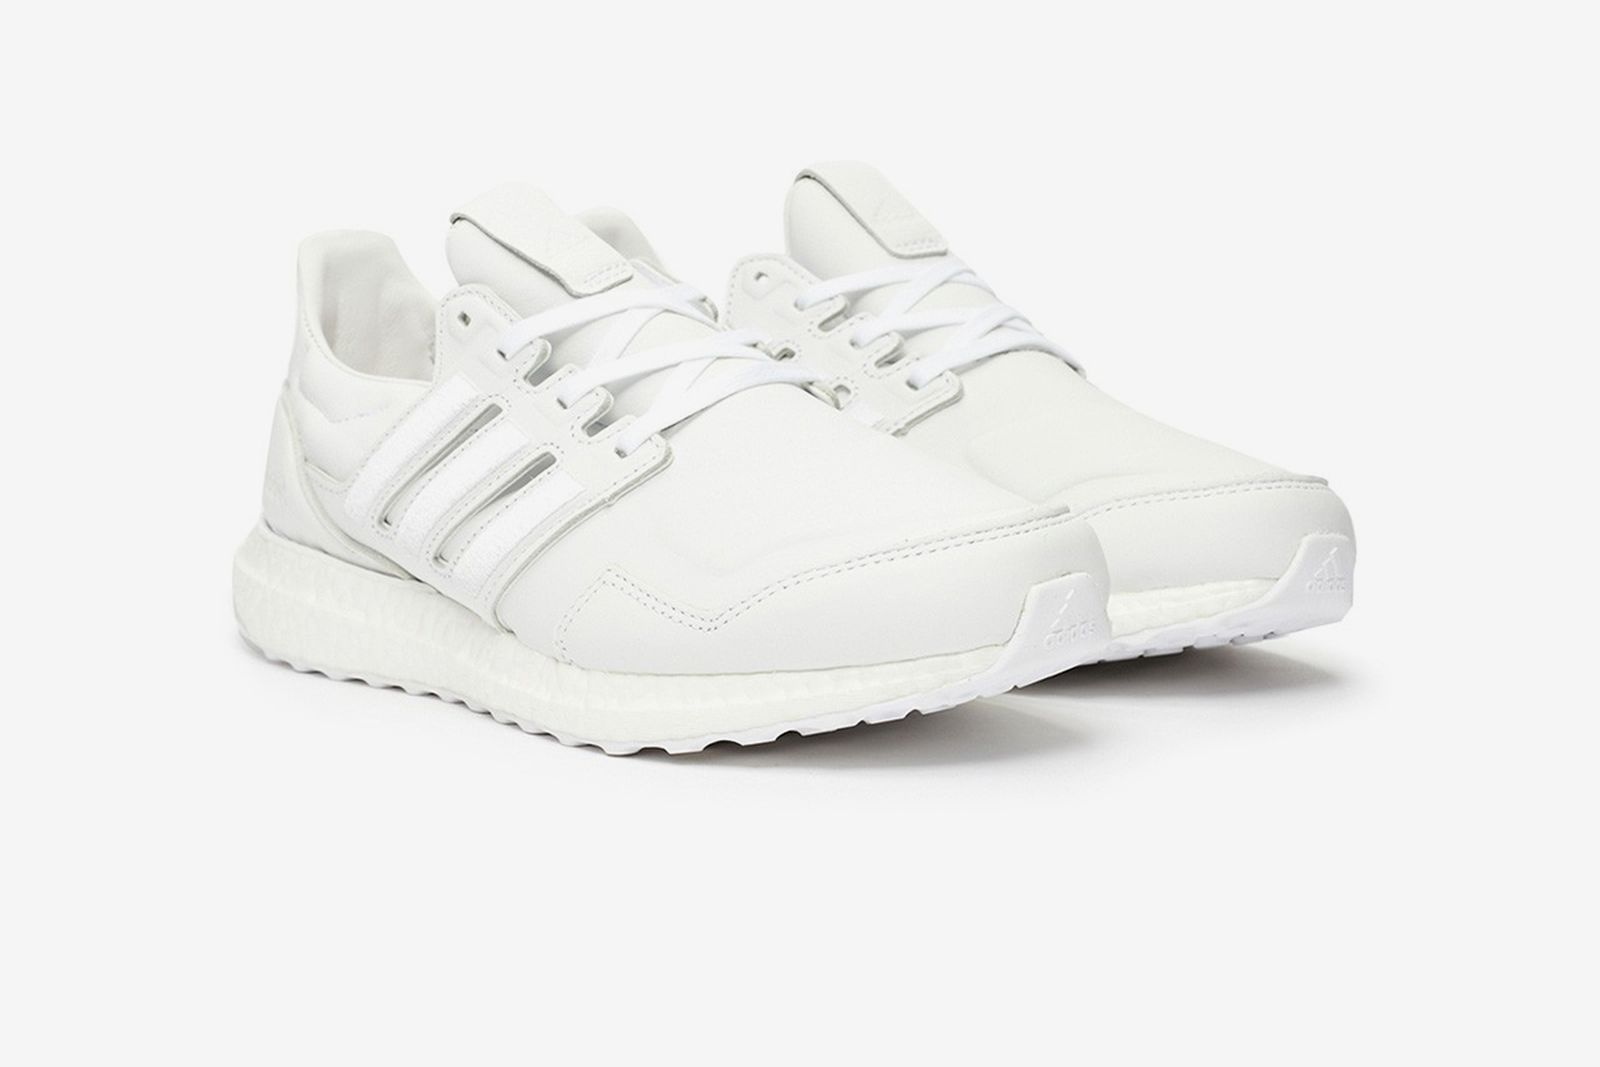 adidas Ultraboost Leather white